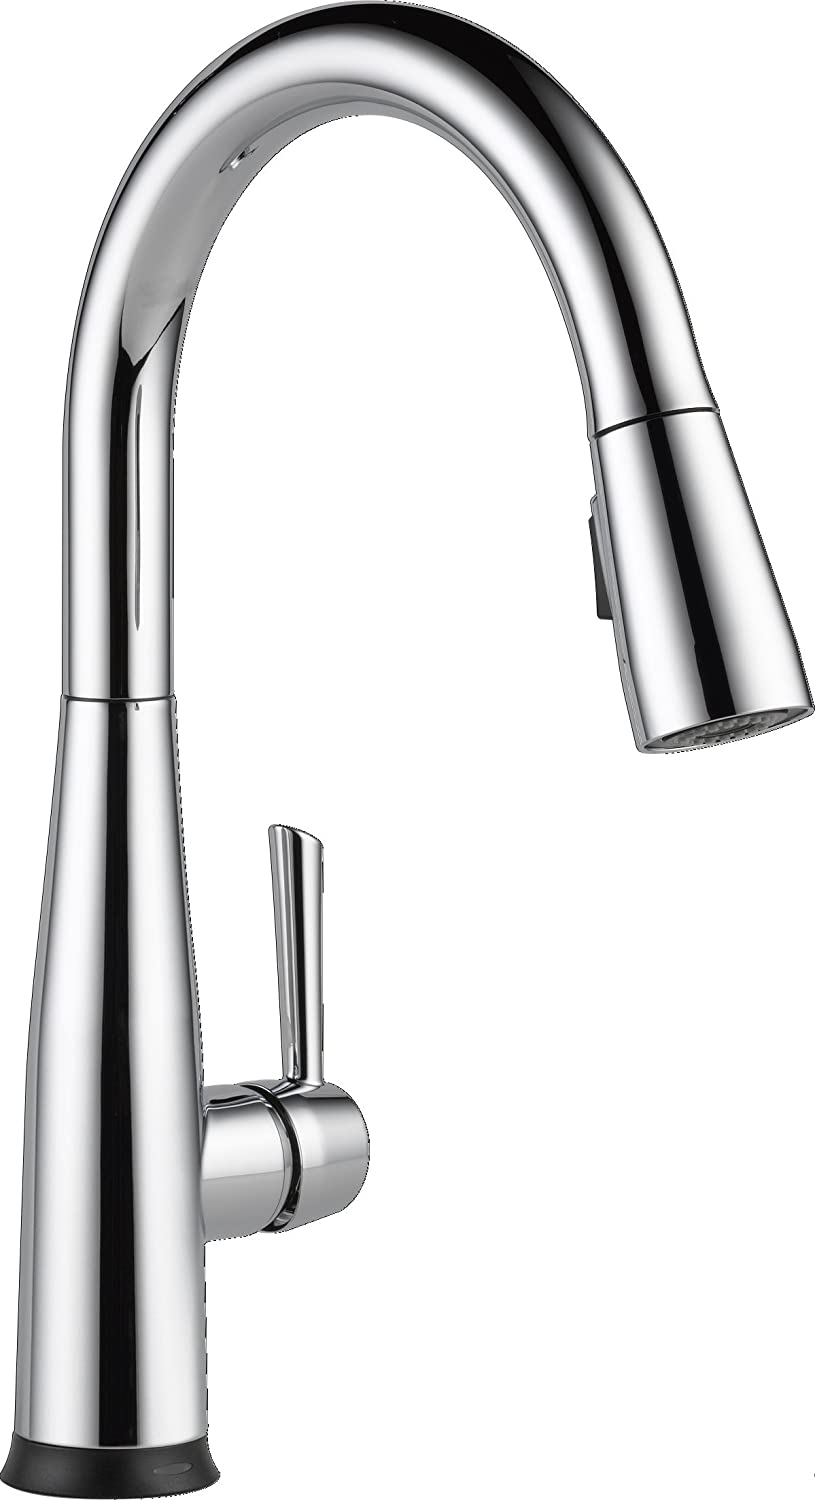 Delta Faucet Essa Single Handle Touch Kitchen Sink Faucet With Pull Down Sprayer Touch2o Technology And Magnetic Docking Spray Head Chrome 9113t Dst Amazon Com